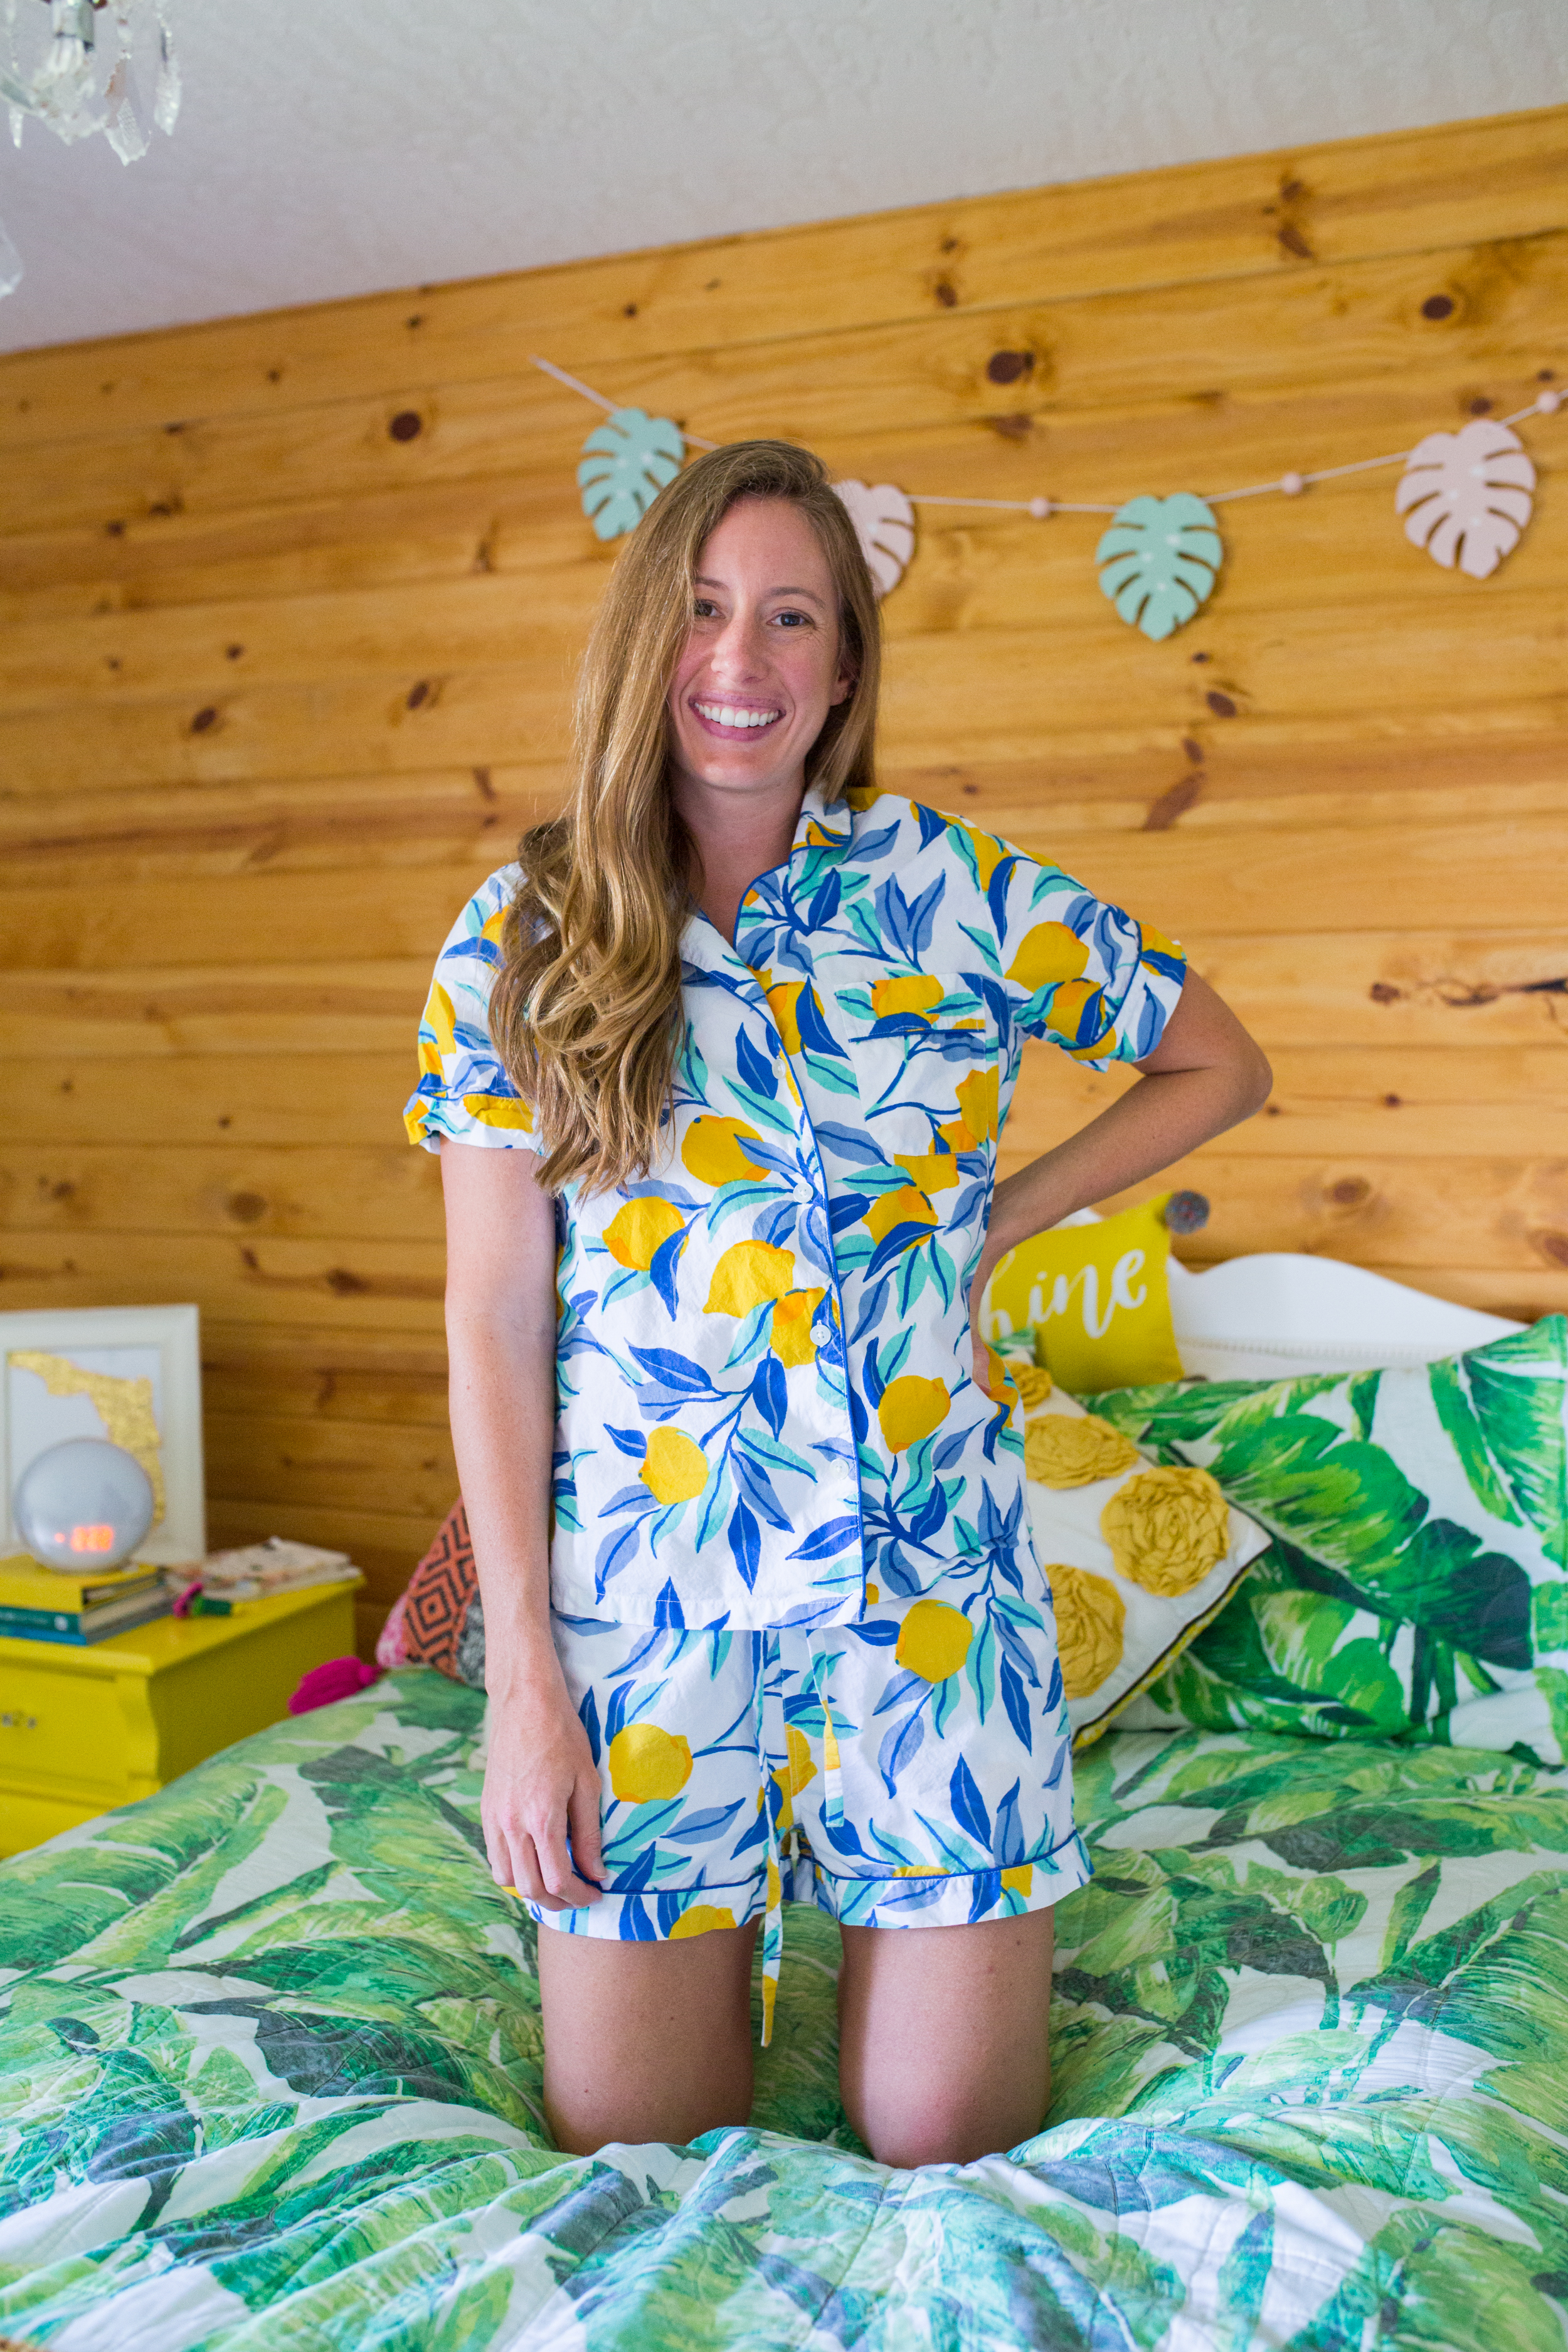 These Printfresh short and long sleep sets are perfect for summer and beyond. These matching pajama sets are made from 100% organic cotton sustainably in India. Click to see my review of the matching Printfresh Pajamas including sizing!